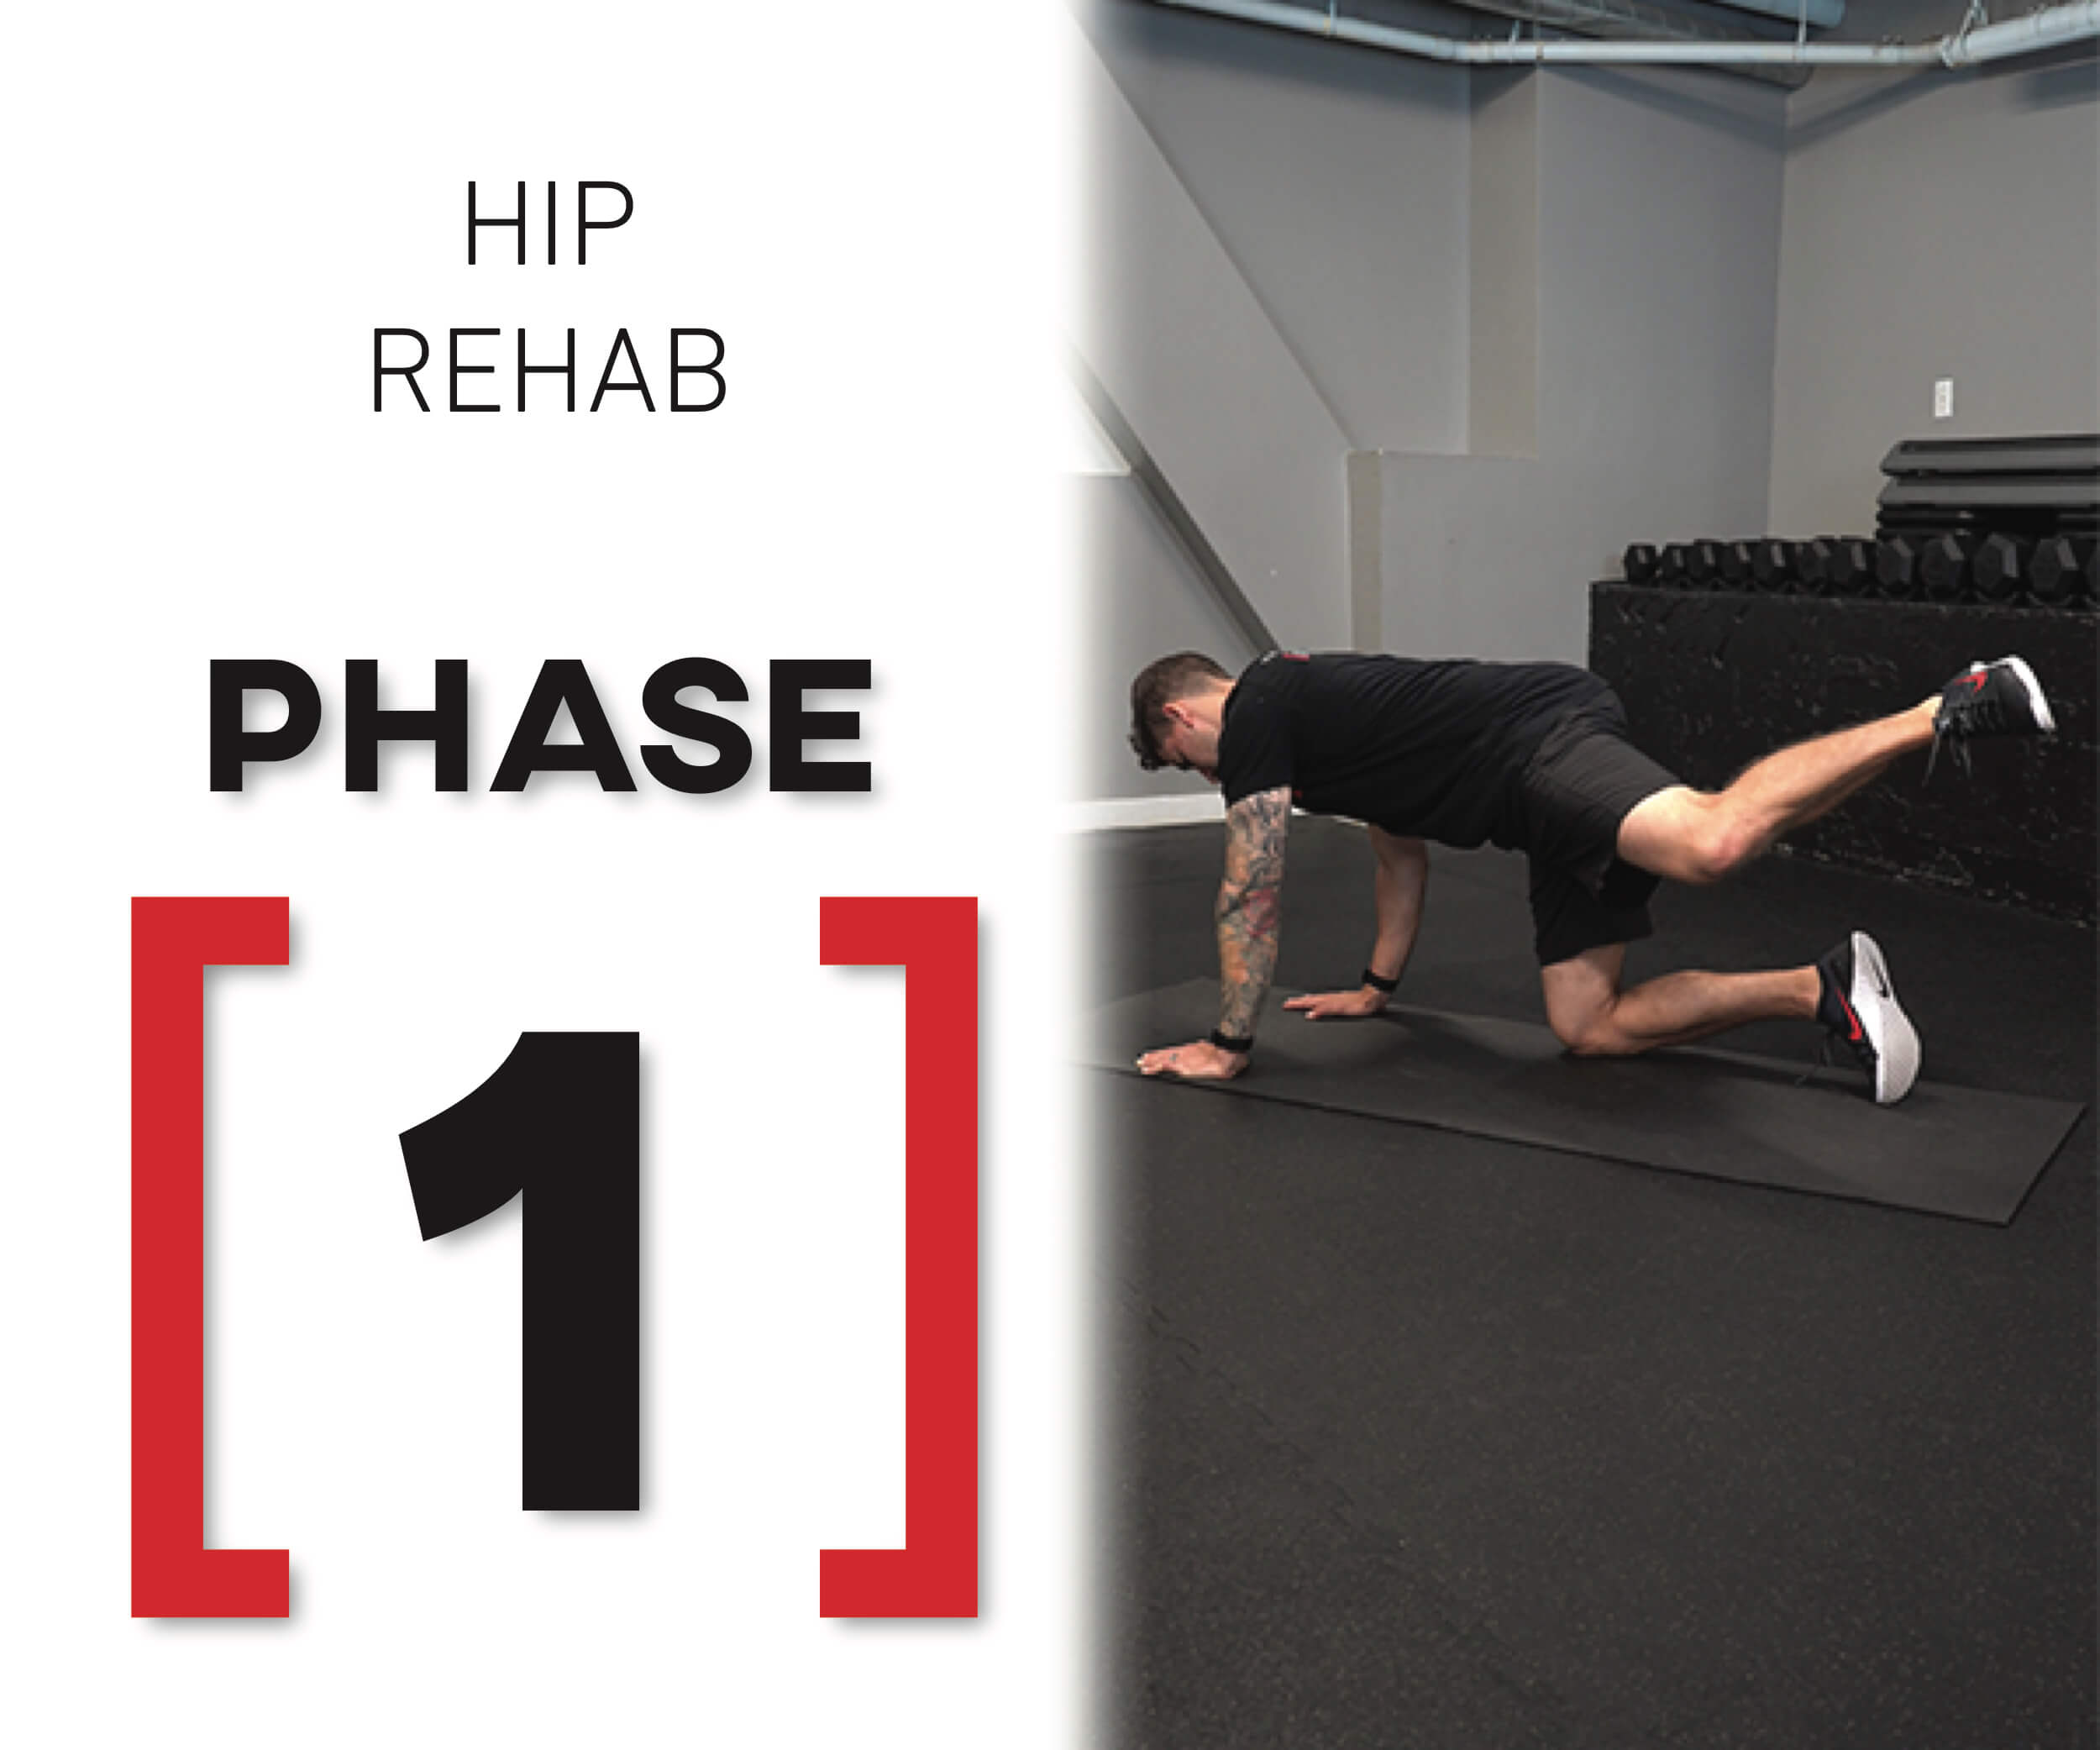 hip prehab program hip rehab phase 1